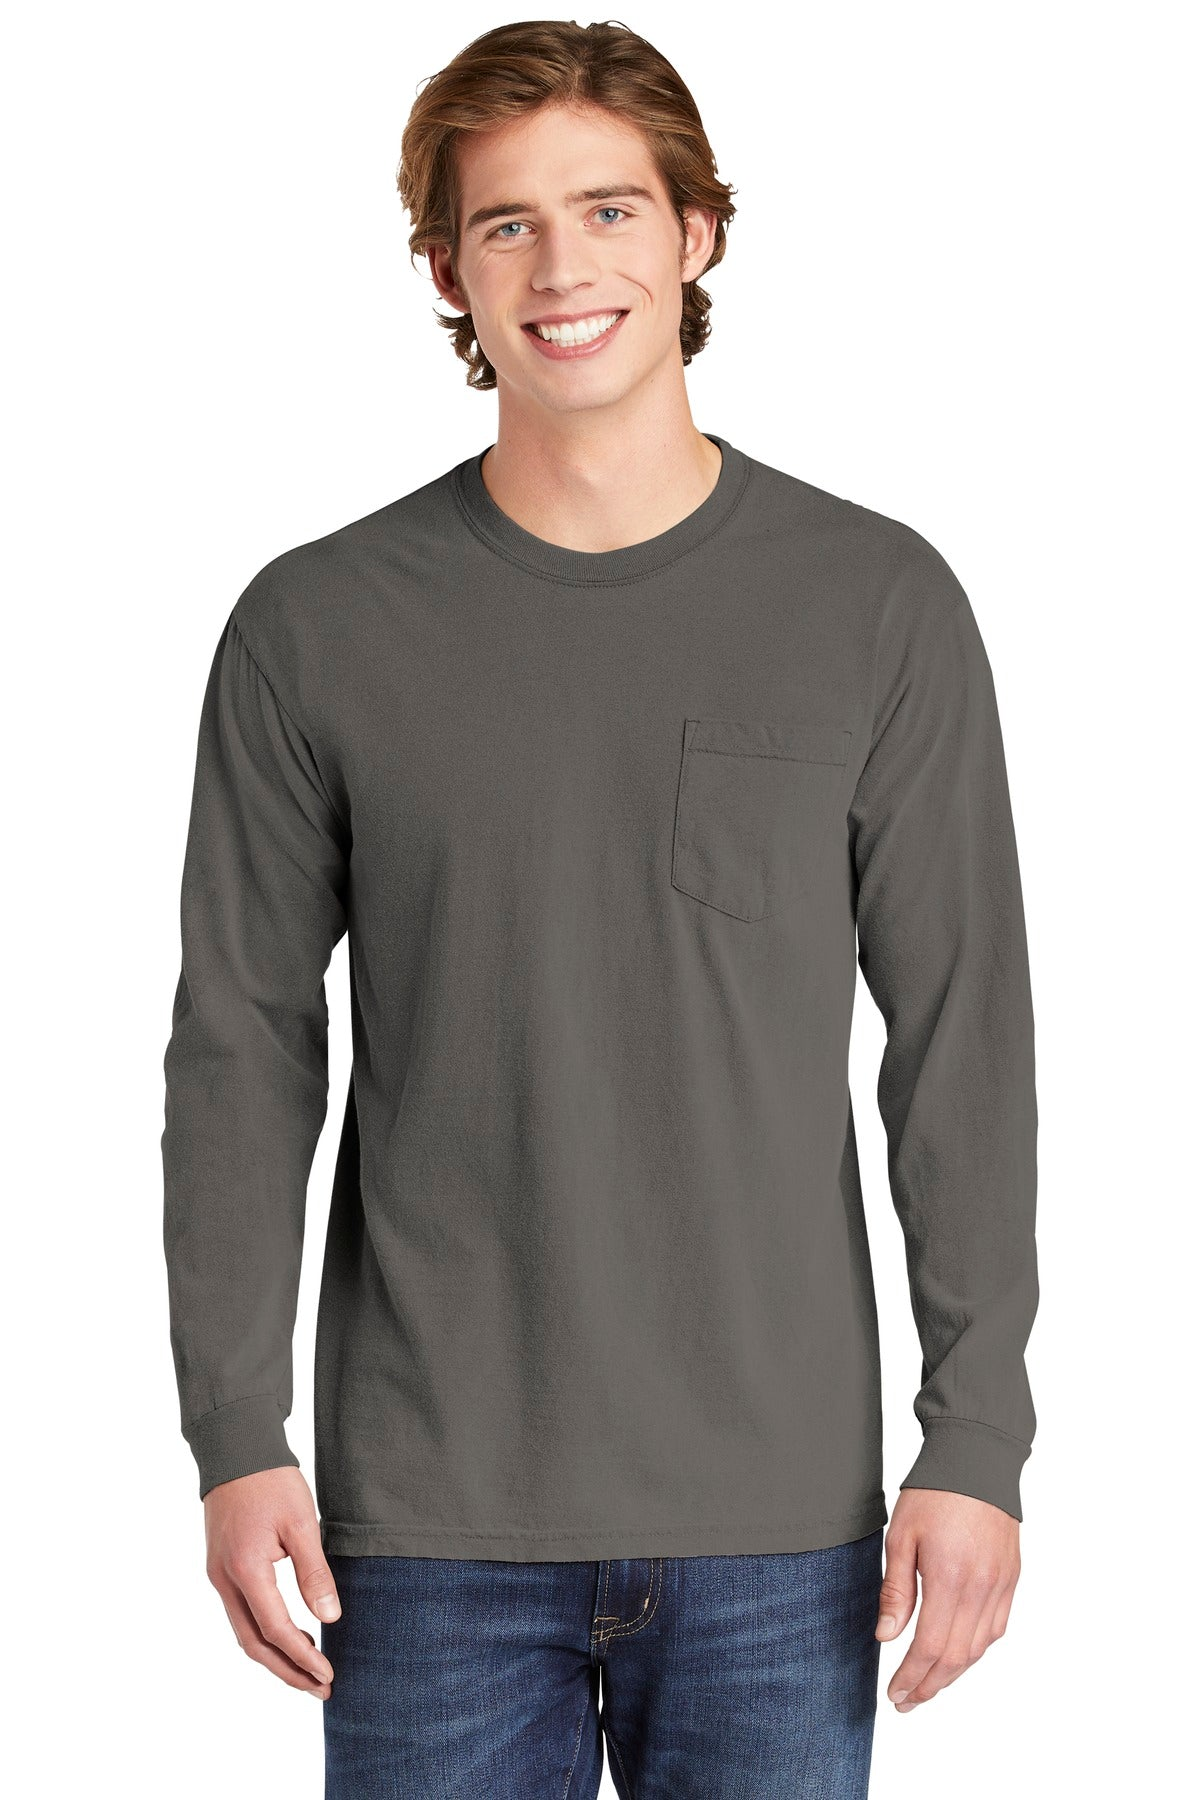 COMFORT COLORS ® Heavyweight Ring Spun Long Sleeve Pocket Tee. 4410 - Aspire Zone